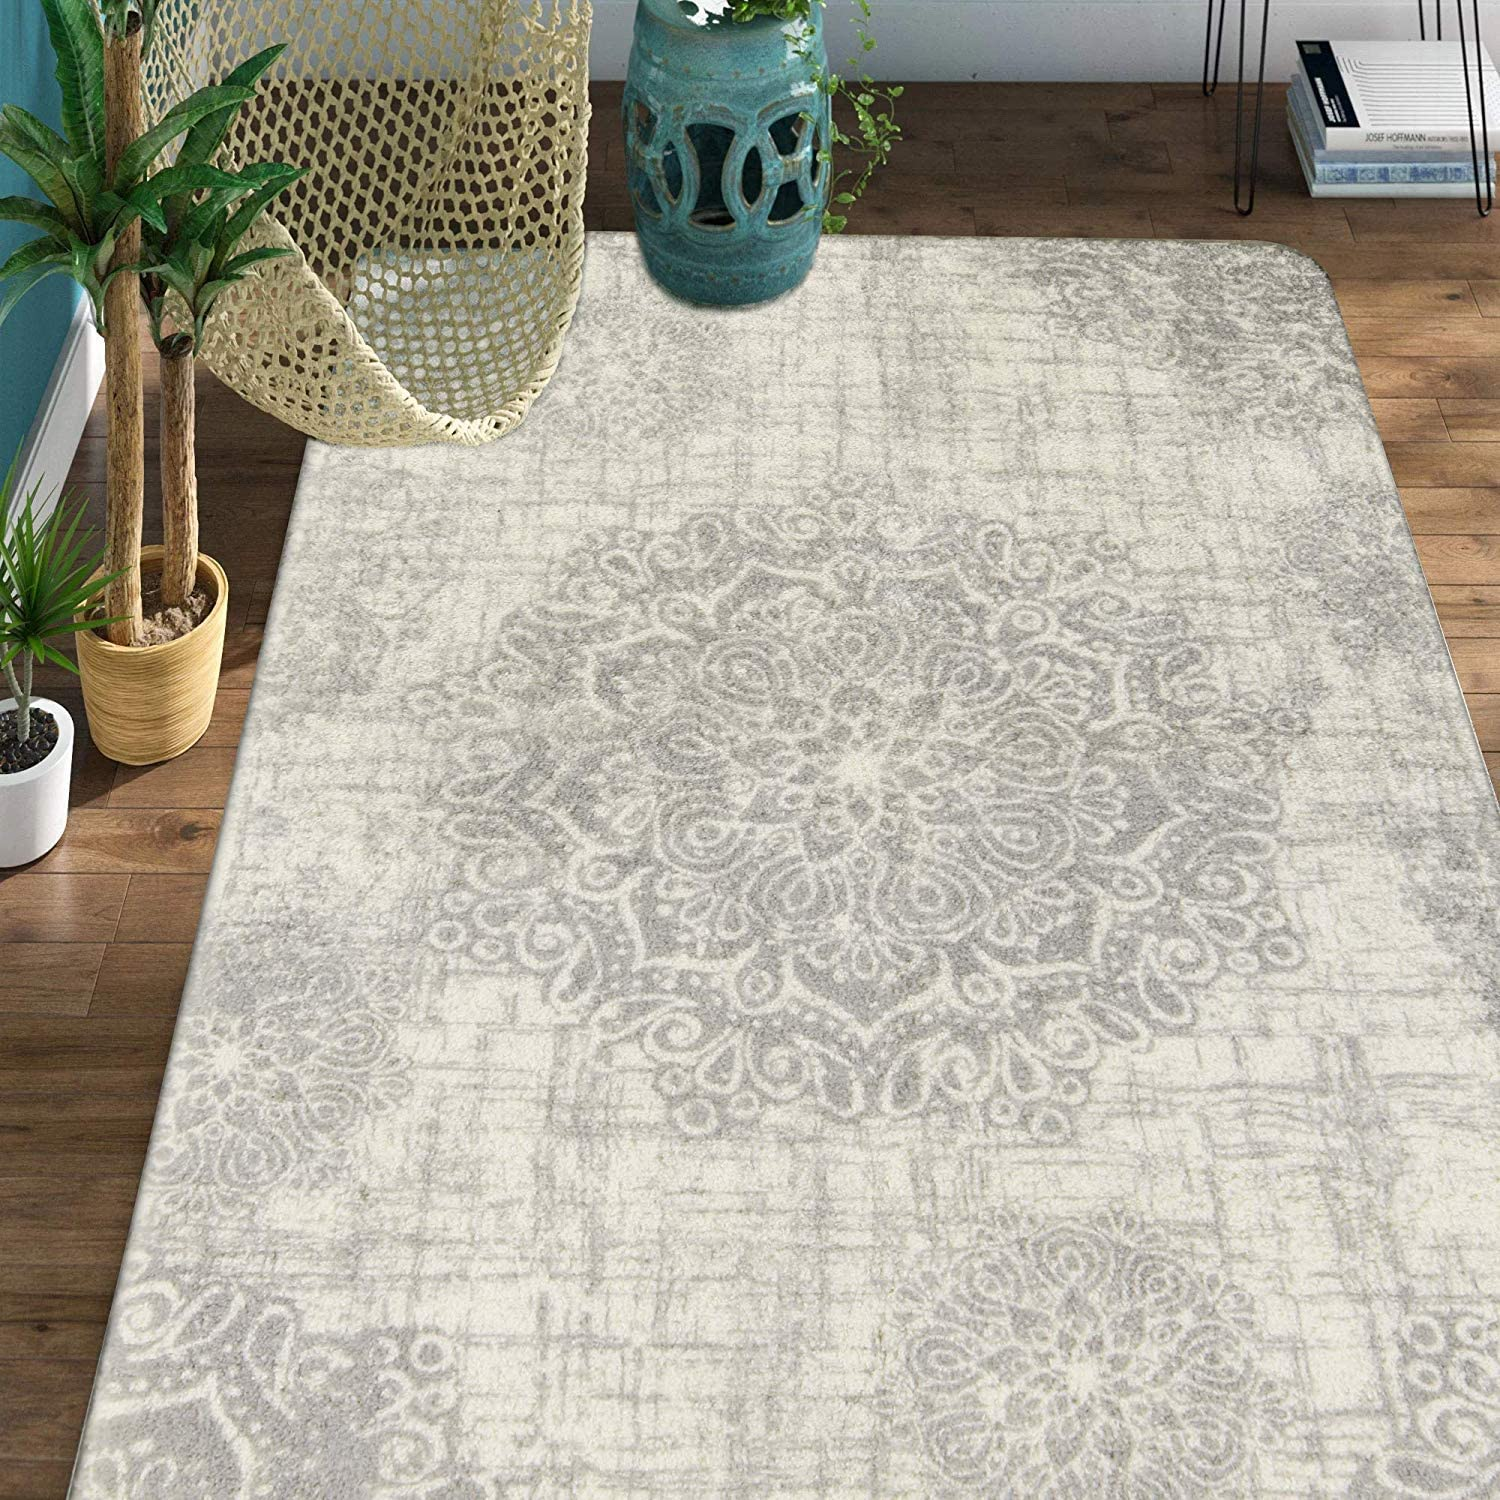 Lahome Vintage Medallion Area Rug - 4' X 6' Faux Wool Non-Slip Area Rug Accent Distressed Throw Rugs Floor Carpet for Living Room Bedrooms Laundry Room Decor (4' x 6', Gray)